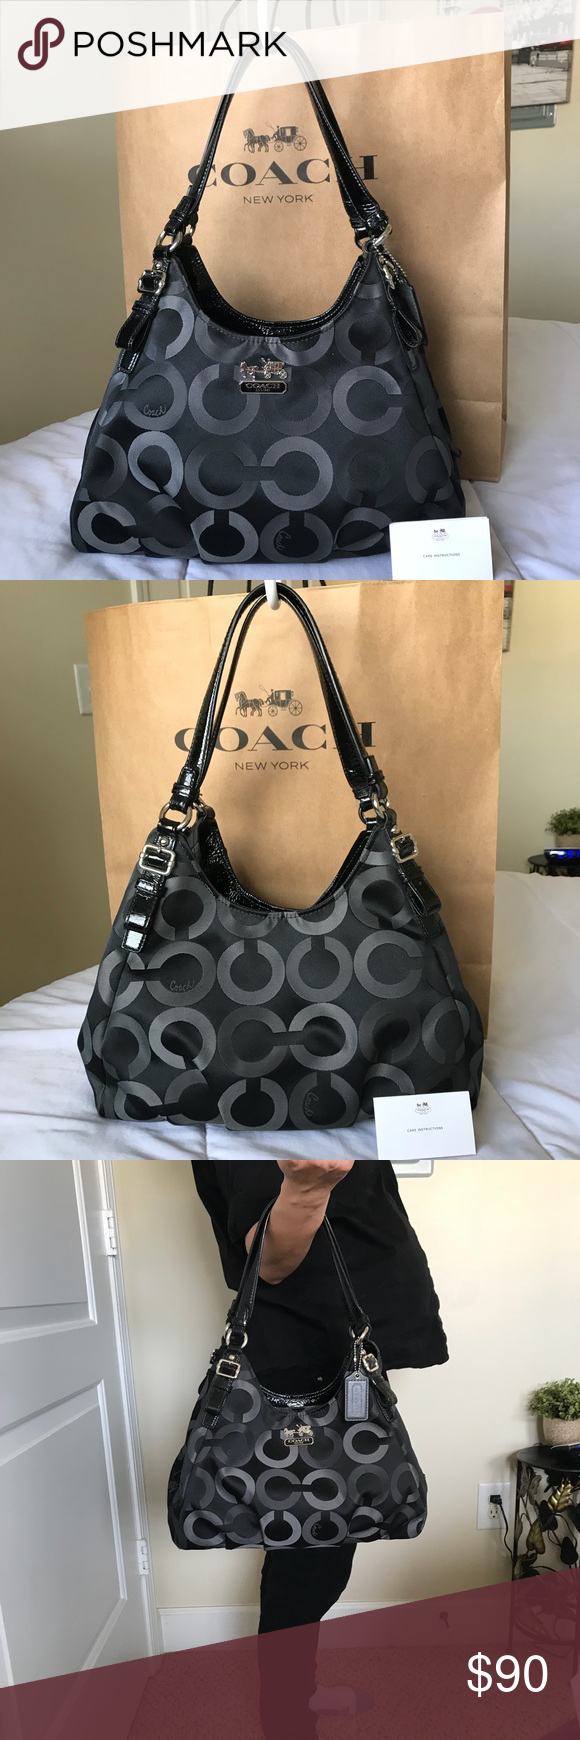 e1b339c584 ... france sold authentic coach purse 100 authentic coach. serial number  c1276 611b0 bbe45